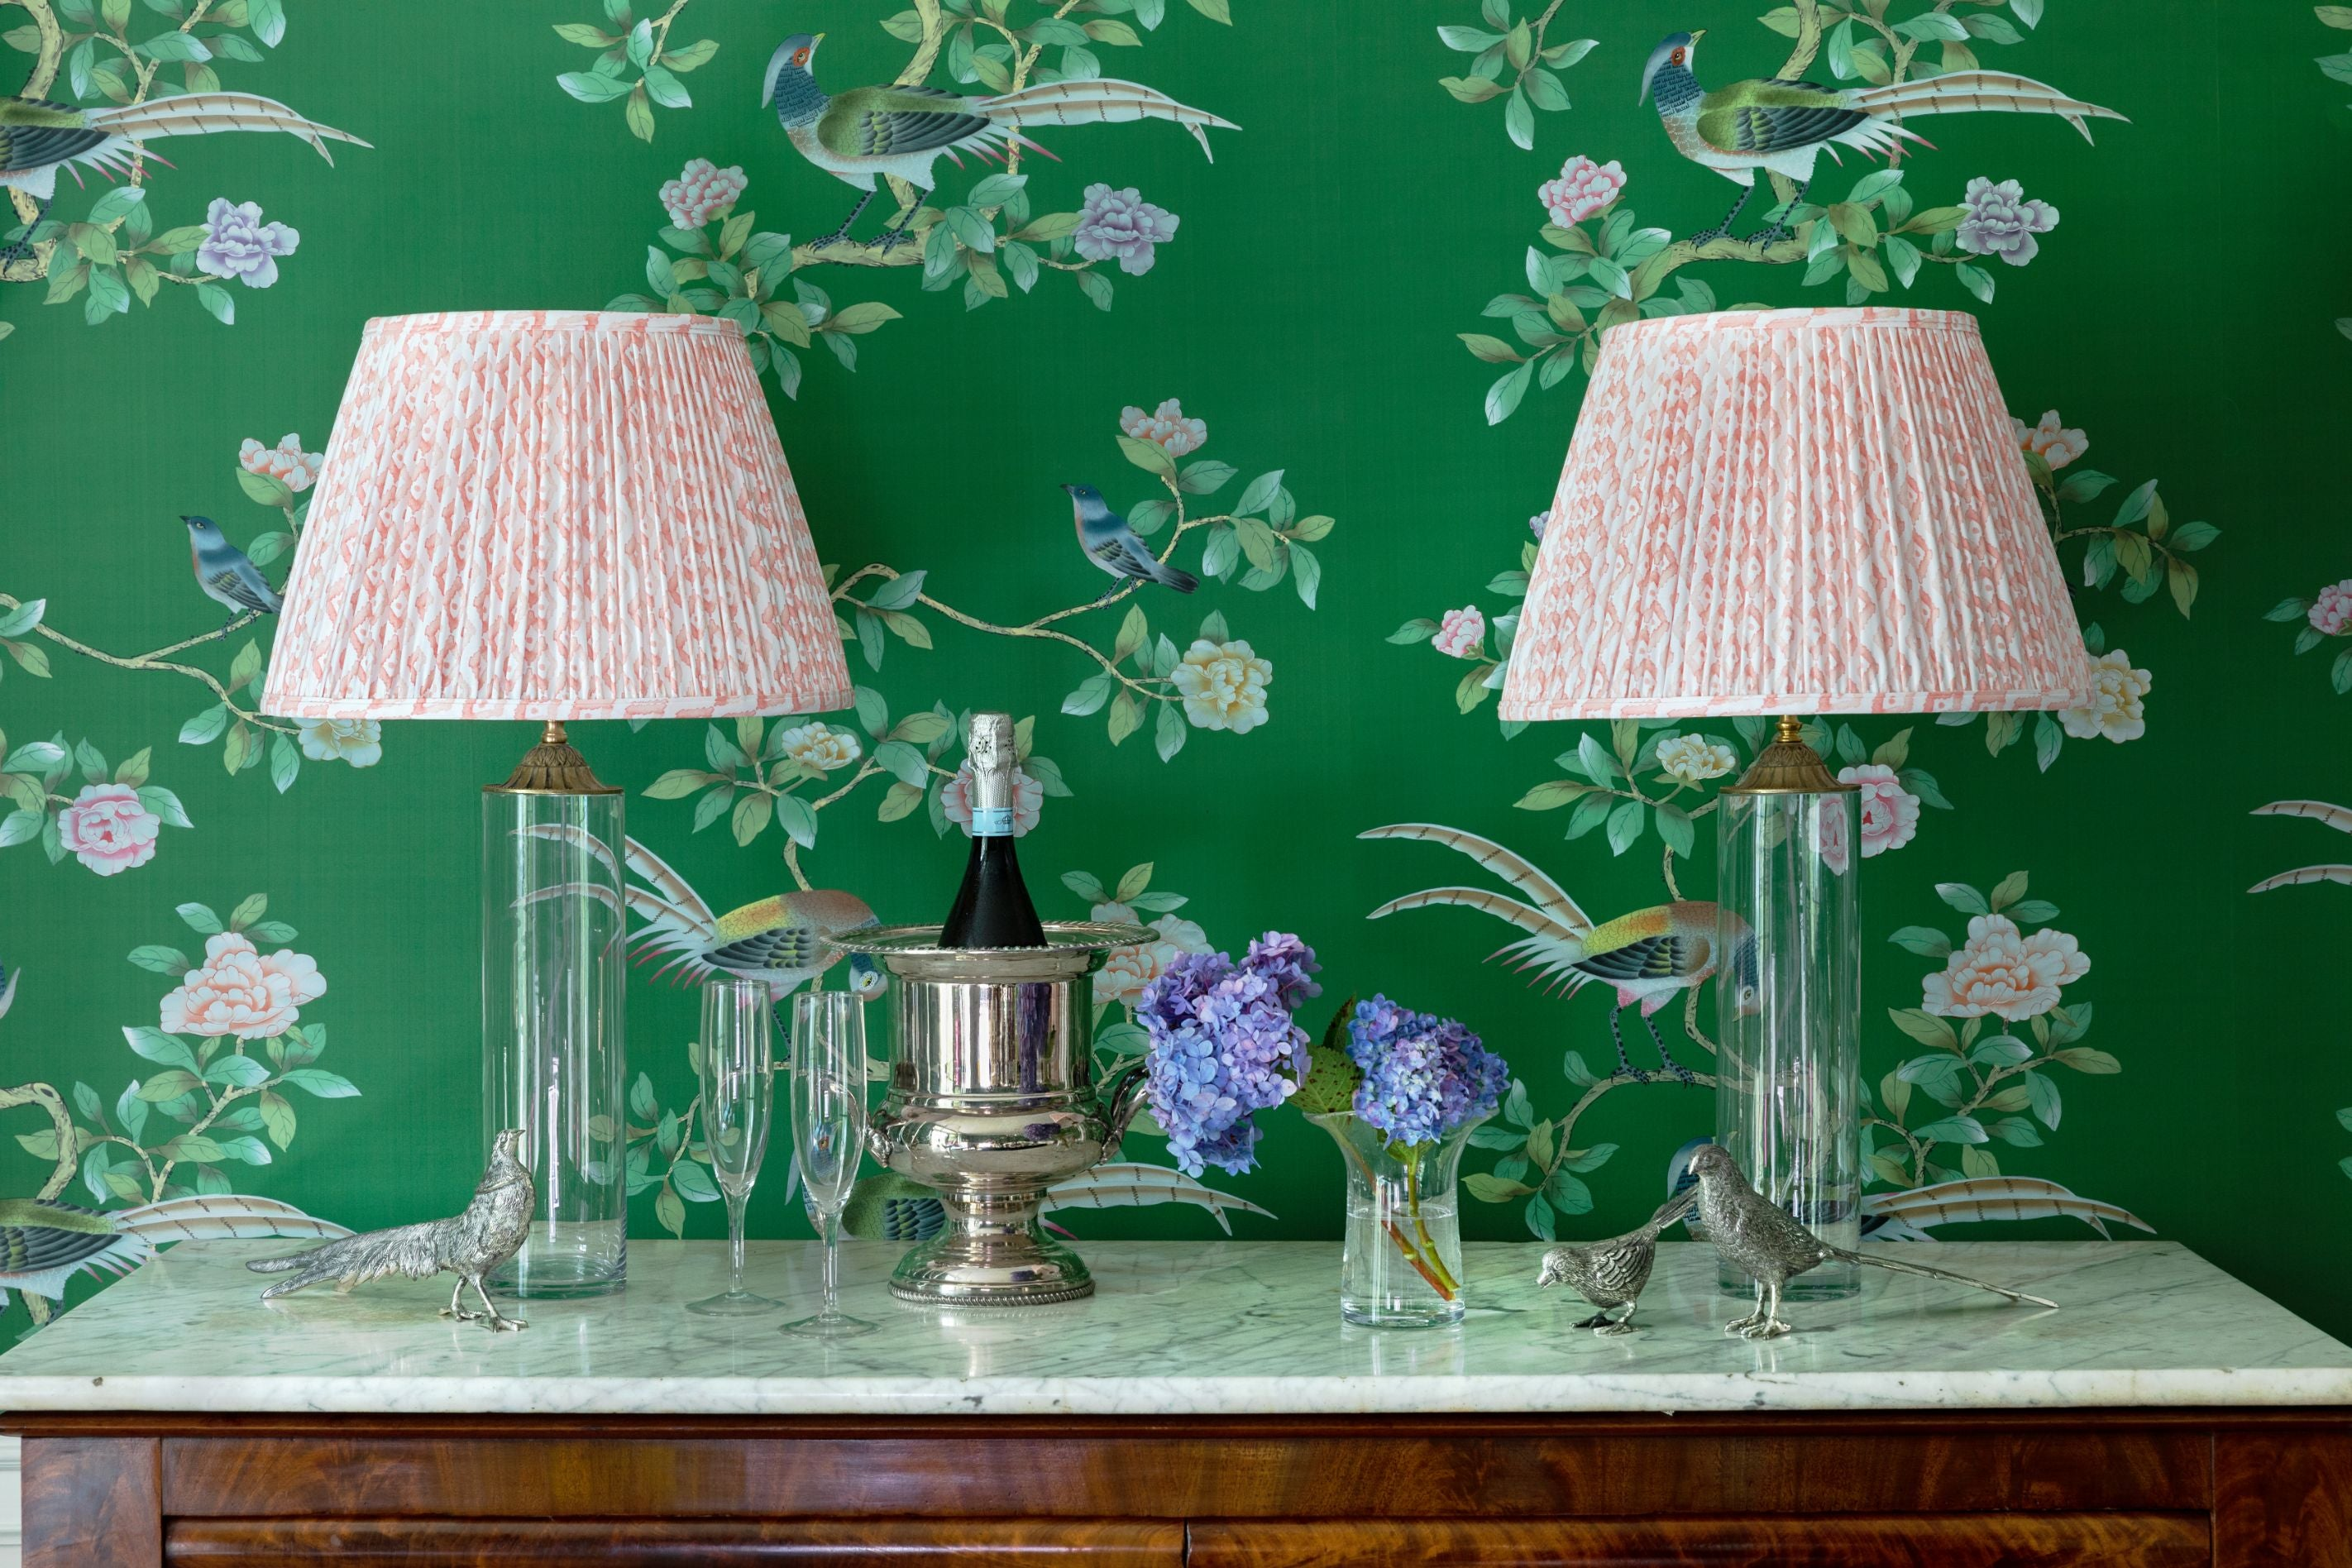 Patterned diamond lampshades.